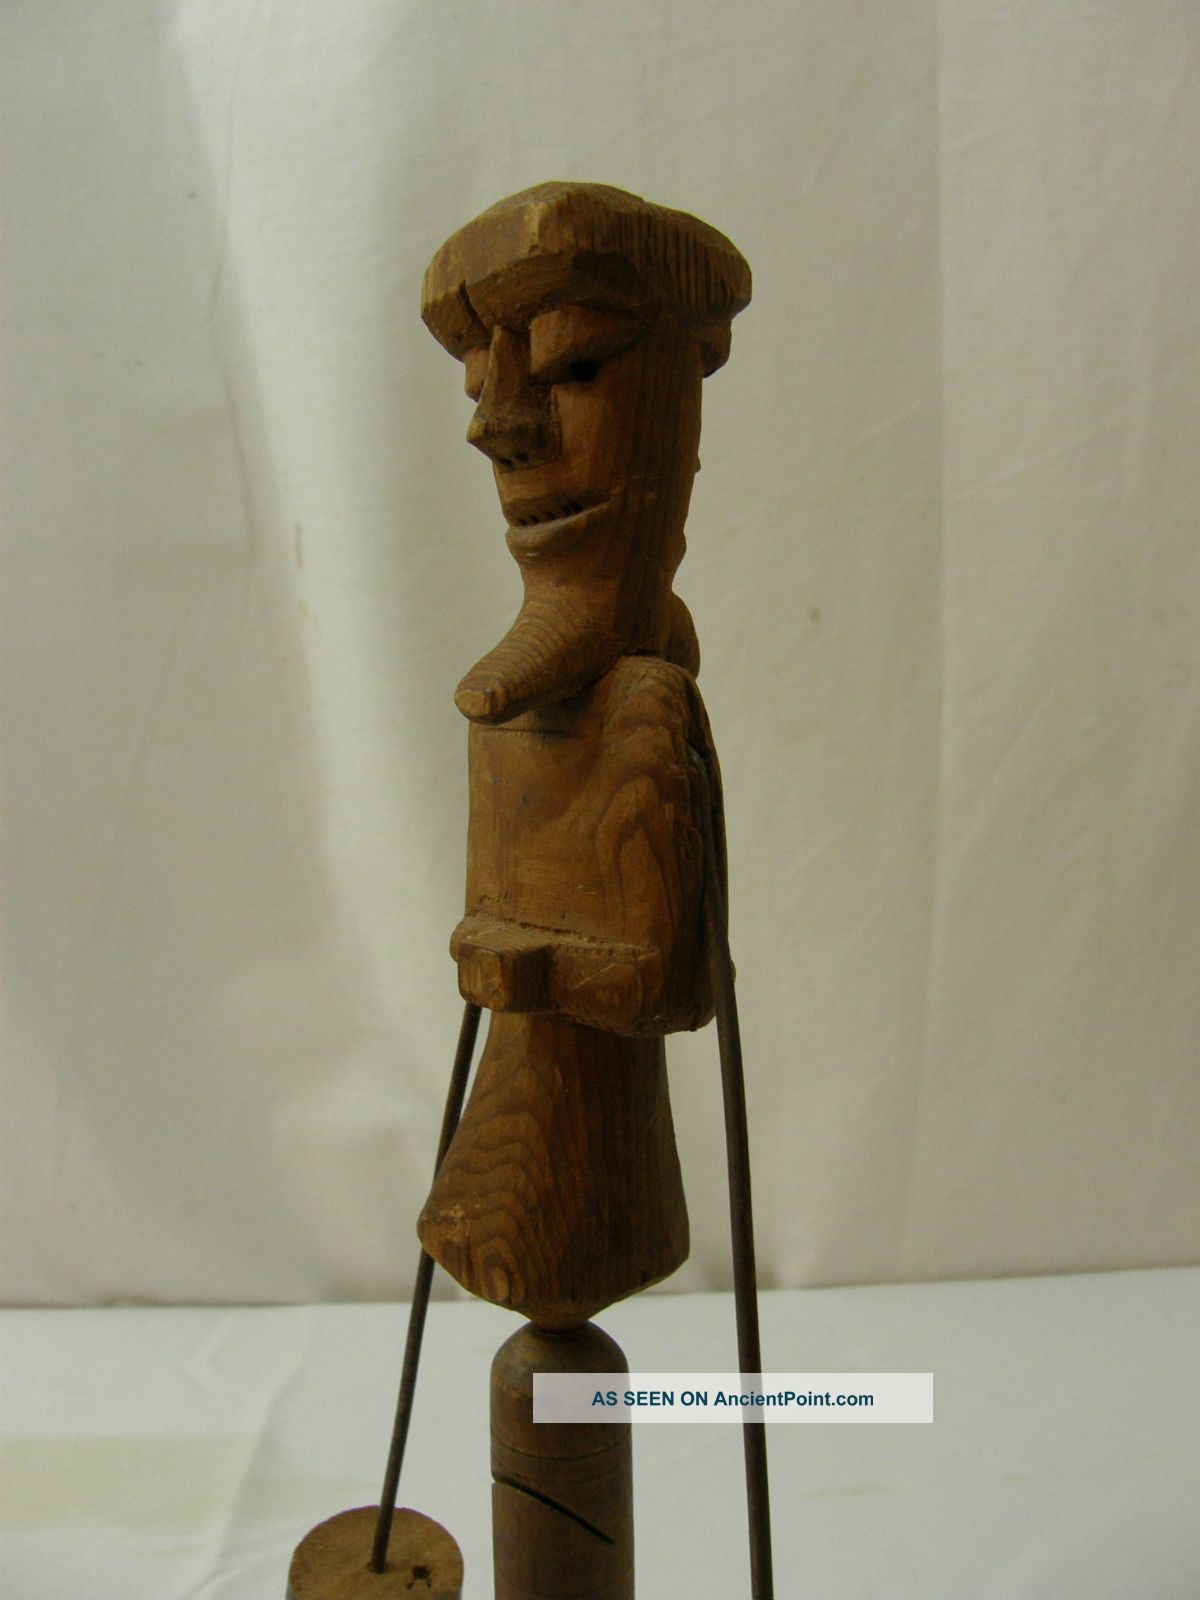 Fantastic Antique American Primitive Folk Art Carved Wood Balance Toy Whimsy Primitives photo